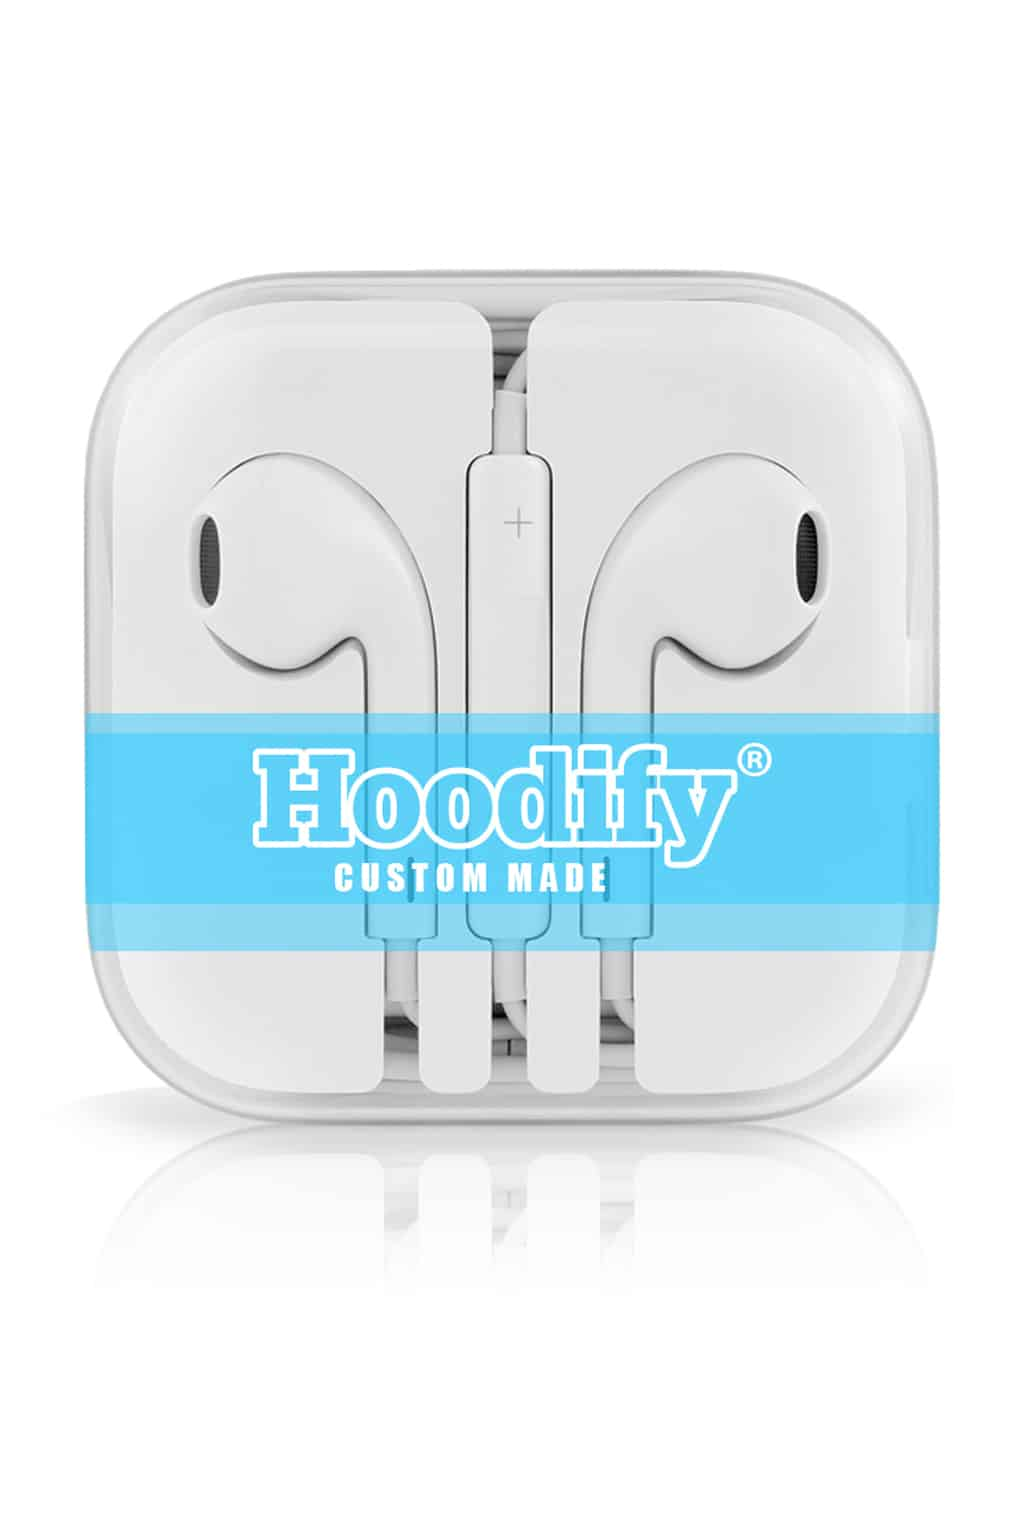 HOODIFY.ME ABOUT US - FREE WITH EVERY ORDER - FREE EARBUD EARPHONES